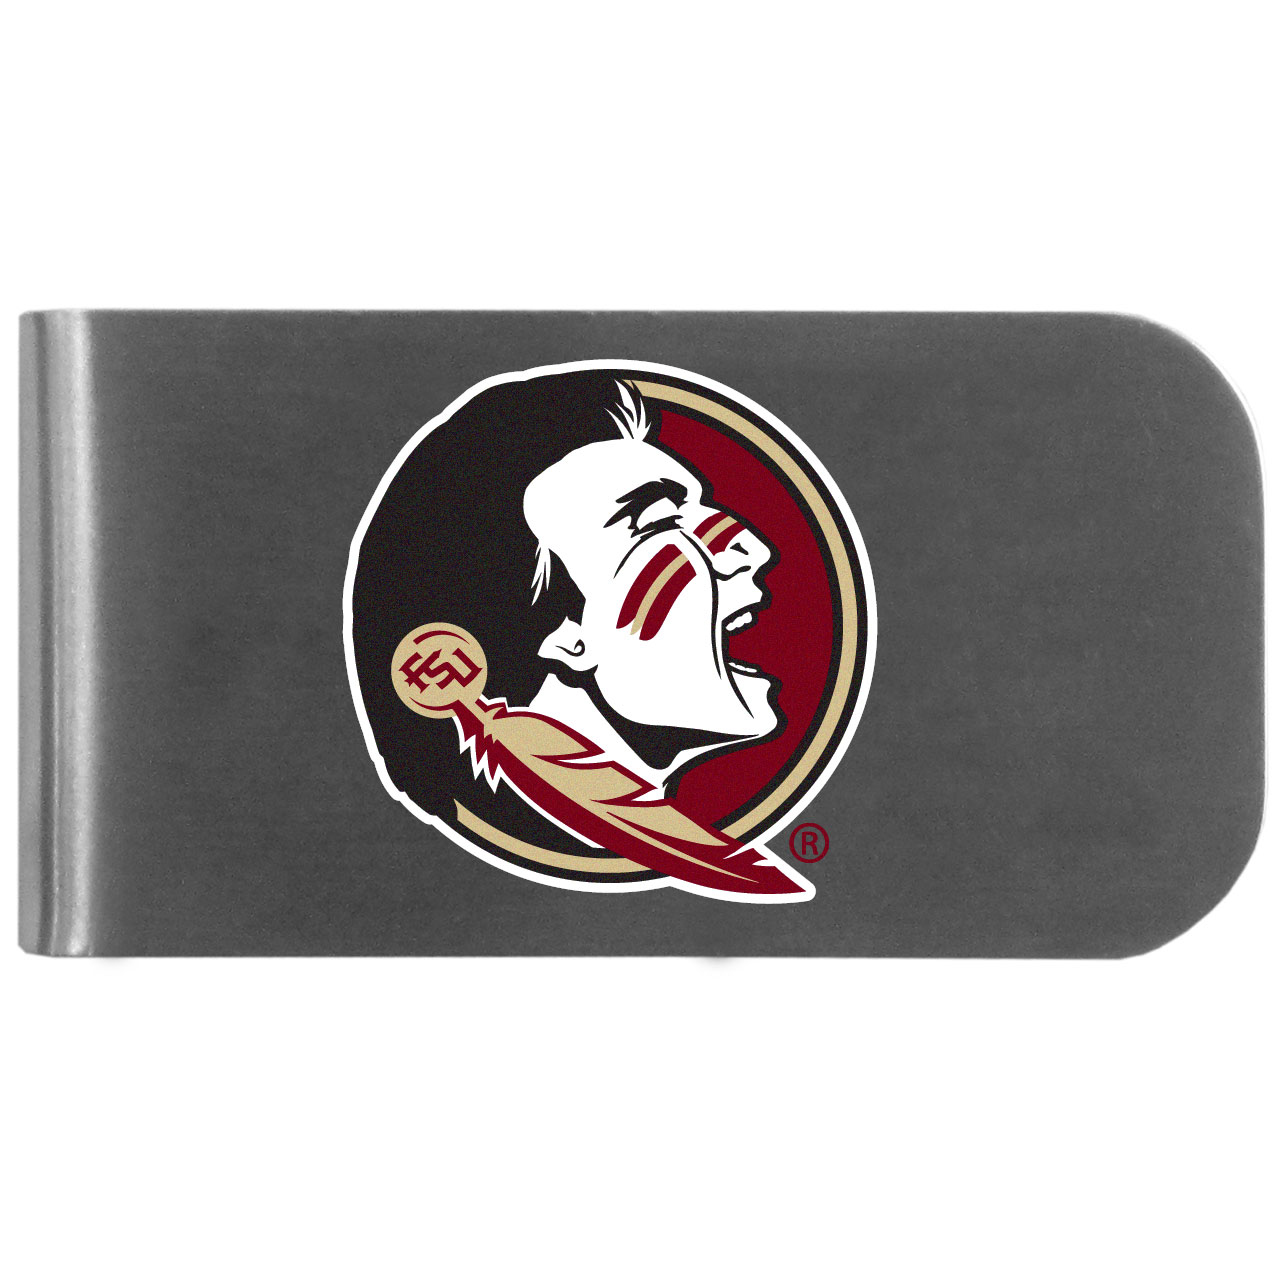 Florida St. Seminoles Logo Bottle Opener Money Clip - This unique money clip features a classic, brushed-metal finish with a handy bottle opener feature on the back. The clip has the Florida St. Seminoles logo expertly printed on the front of the clip.